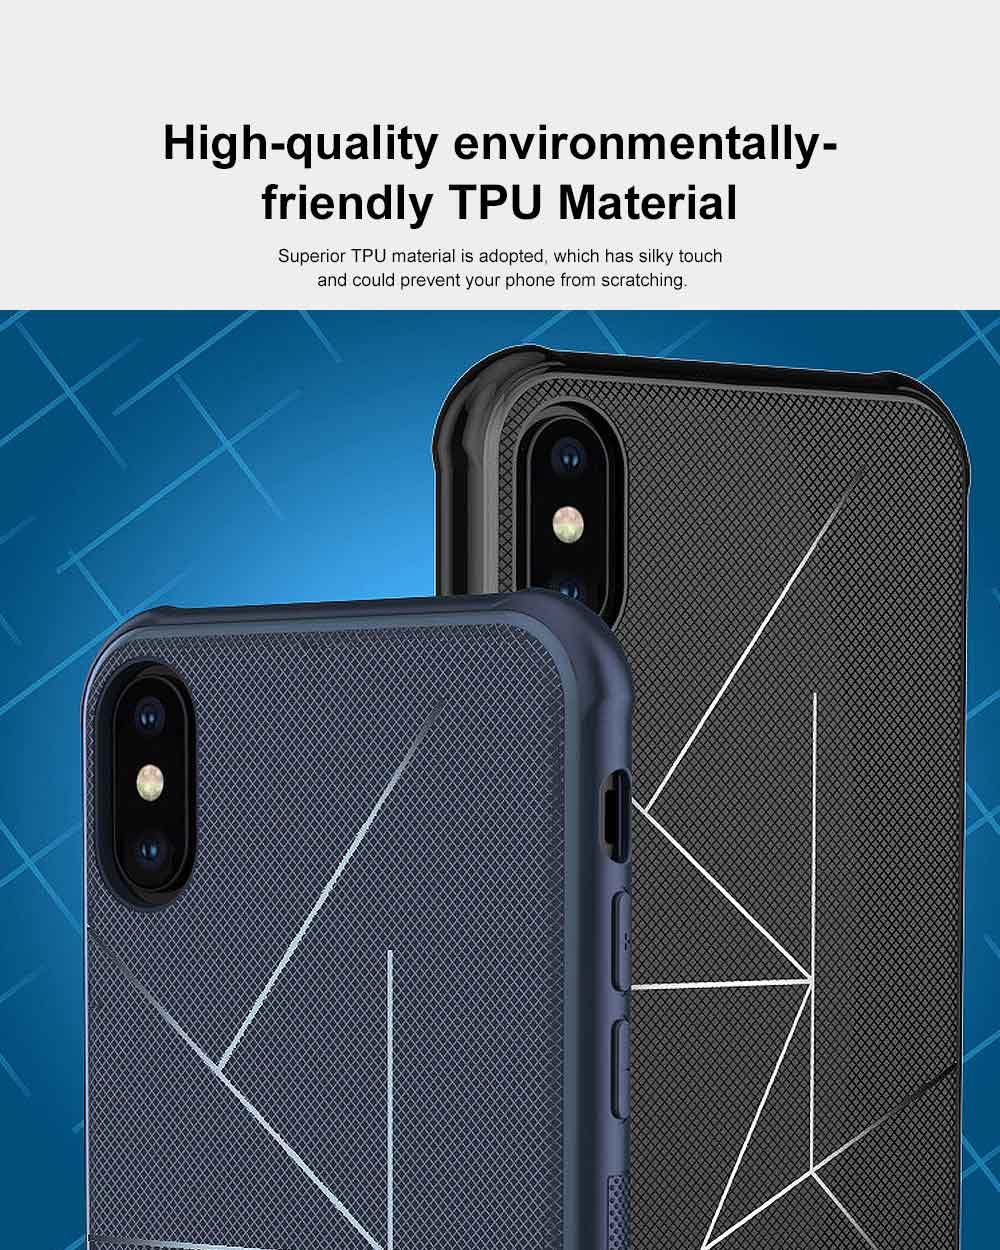 Geometric Scheme Phone Case, Magnetic Car Holder TPU Phone Case, Four-angle Thicken Protection, Minimalist Phone Case for iPhone and Samsung 4